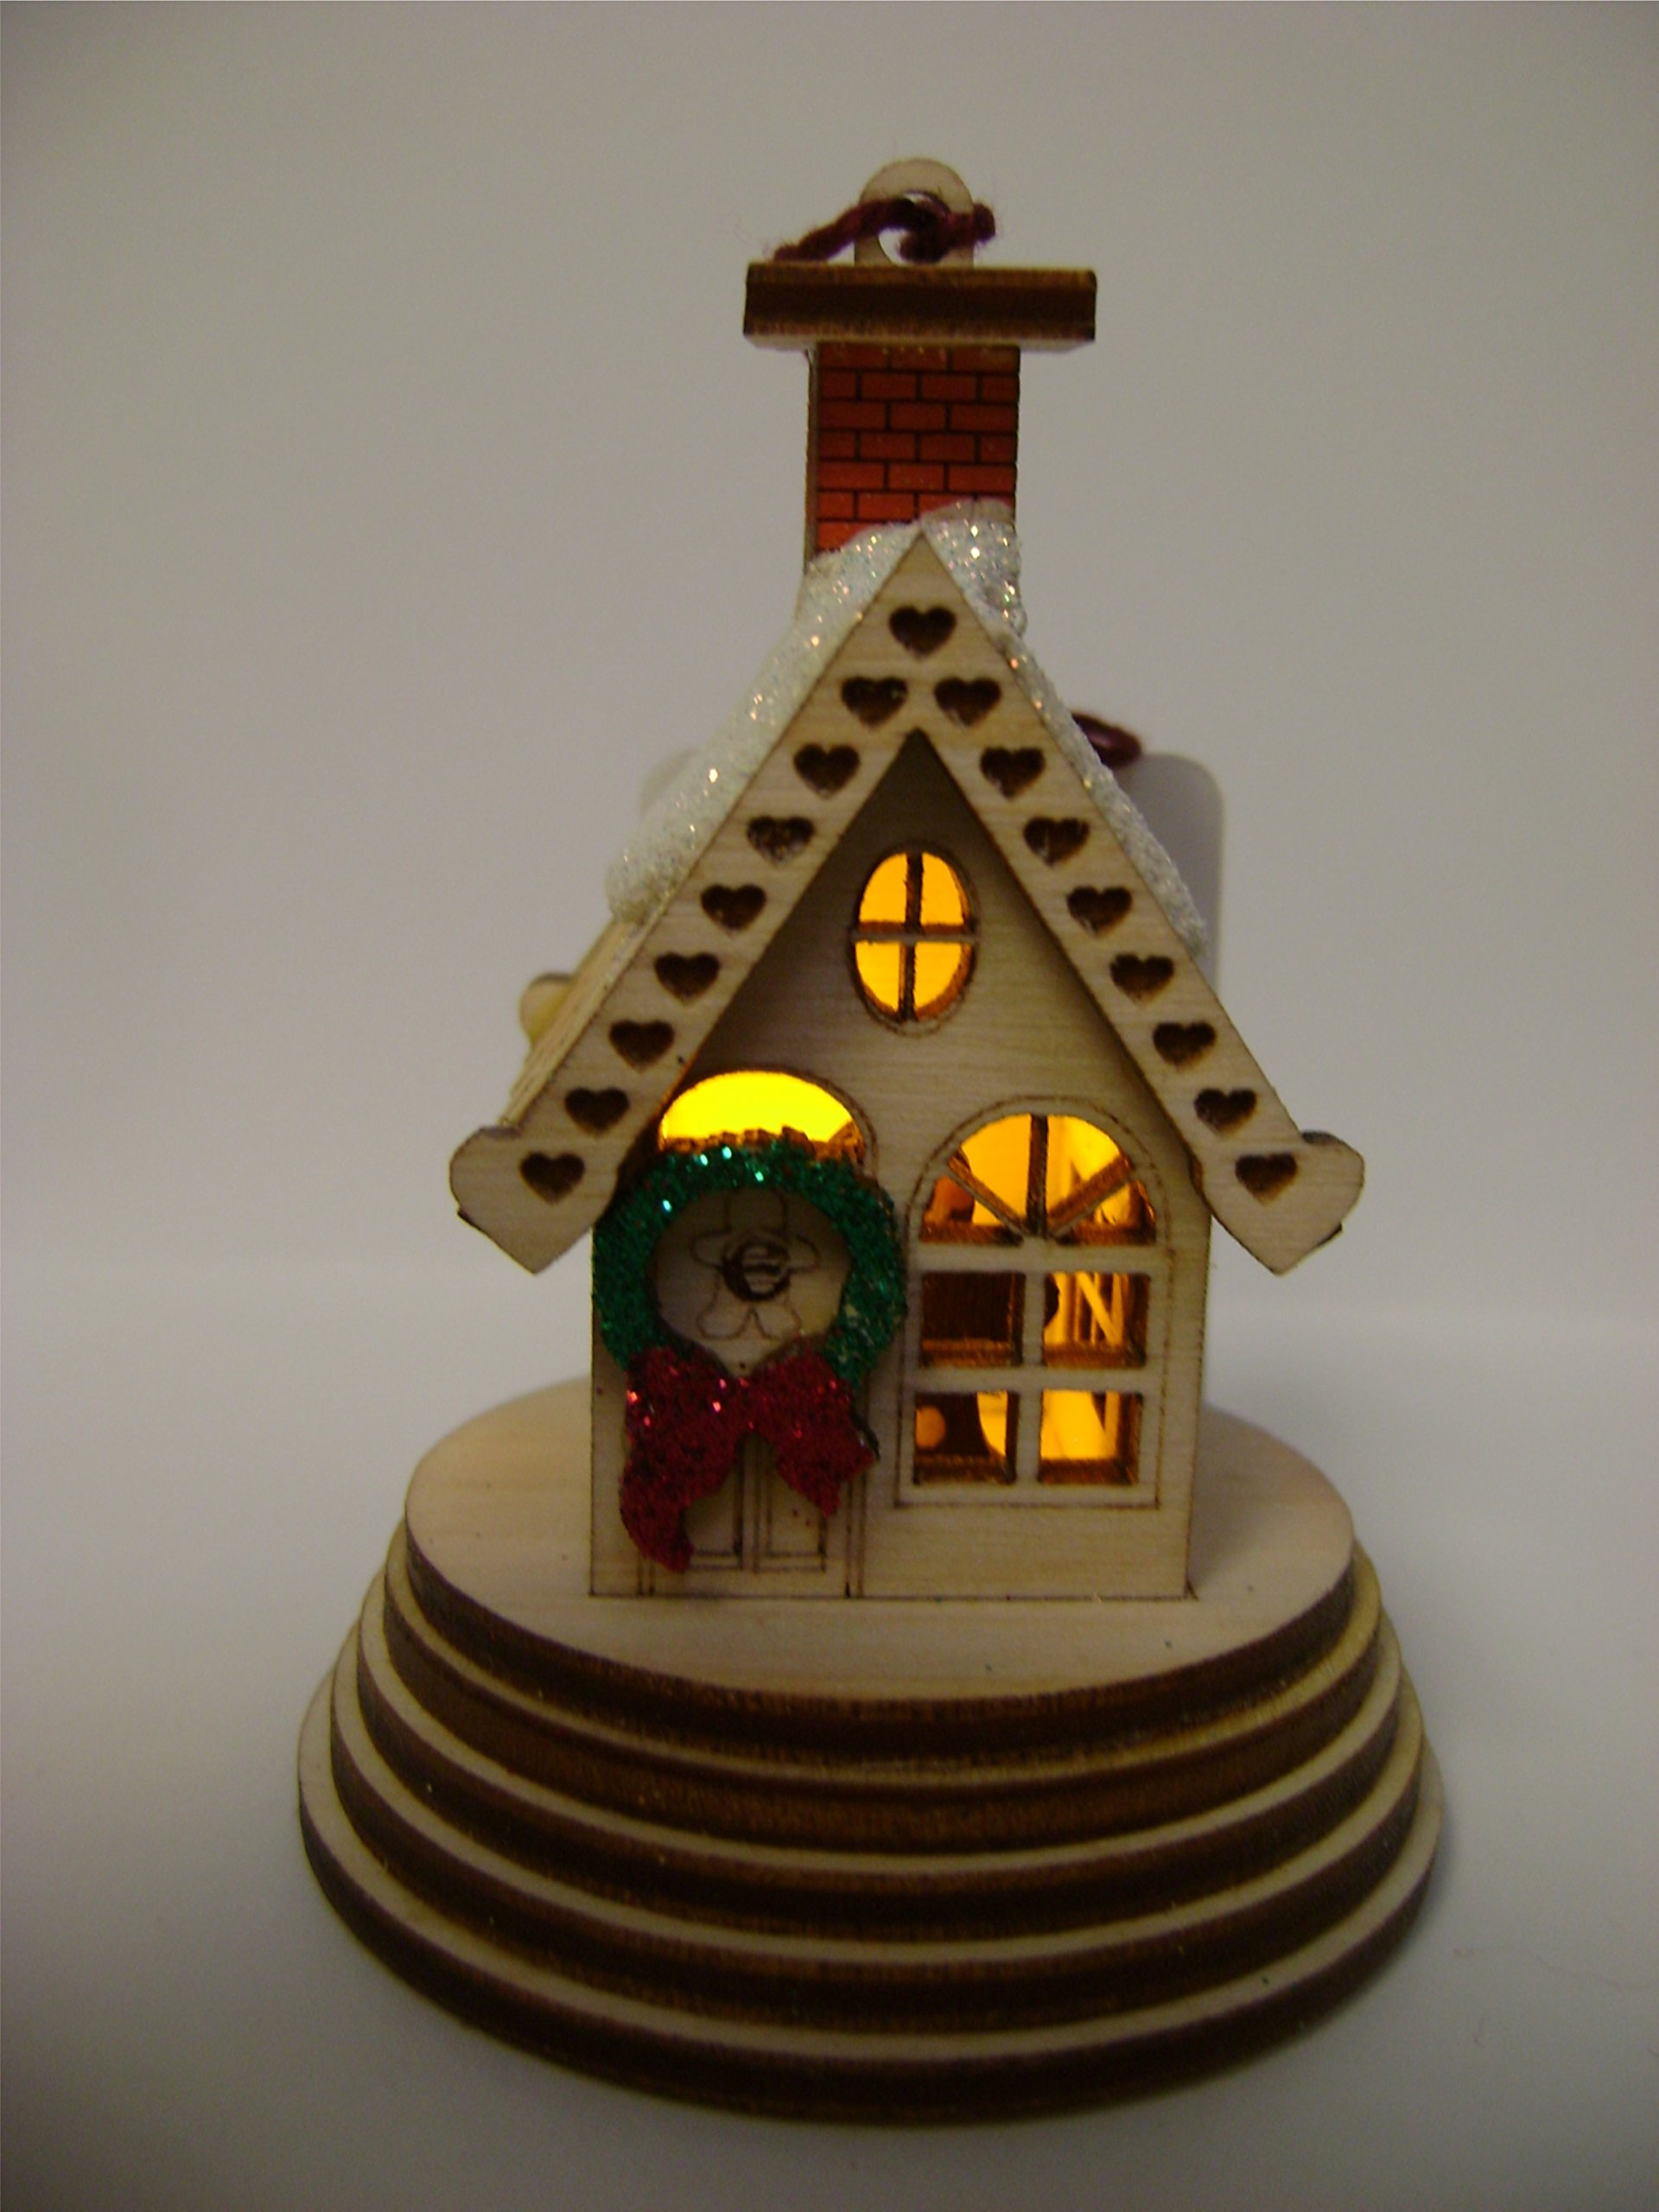 Ginger Cottages - Elf Cottage GC001, small cottage with a light and battery included